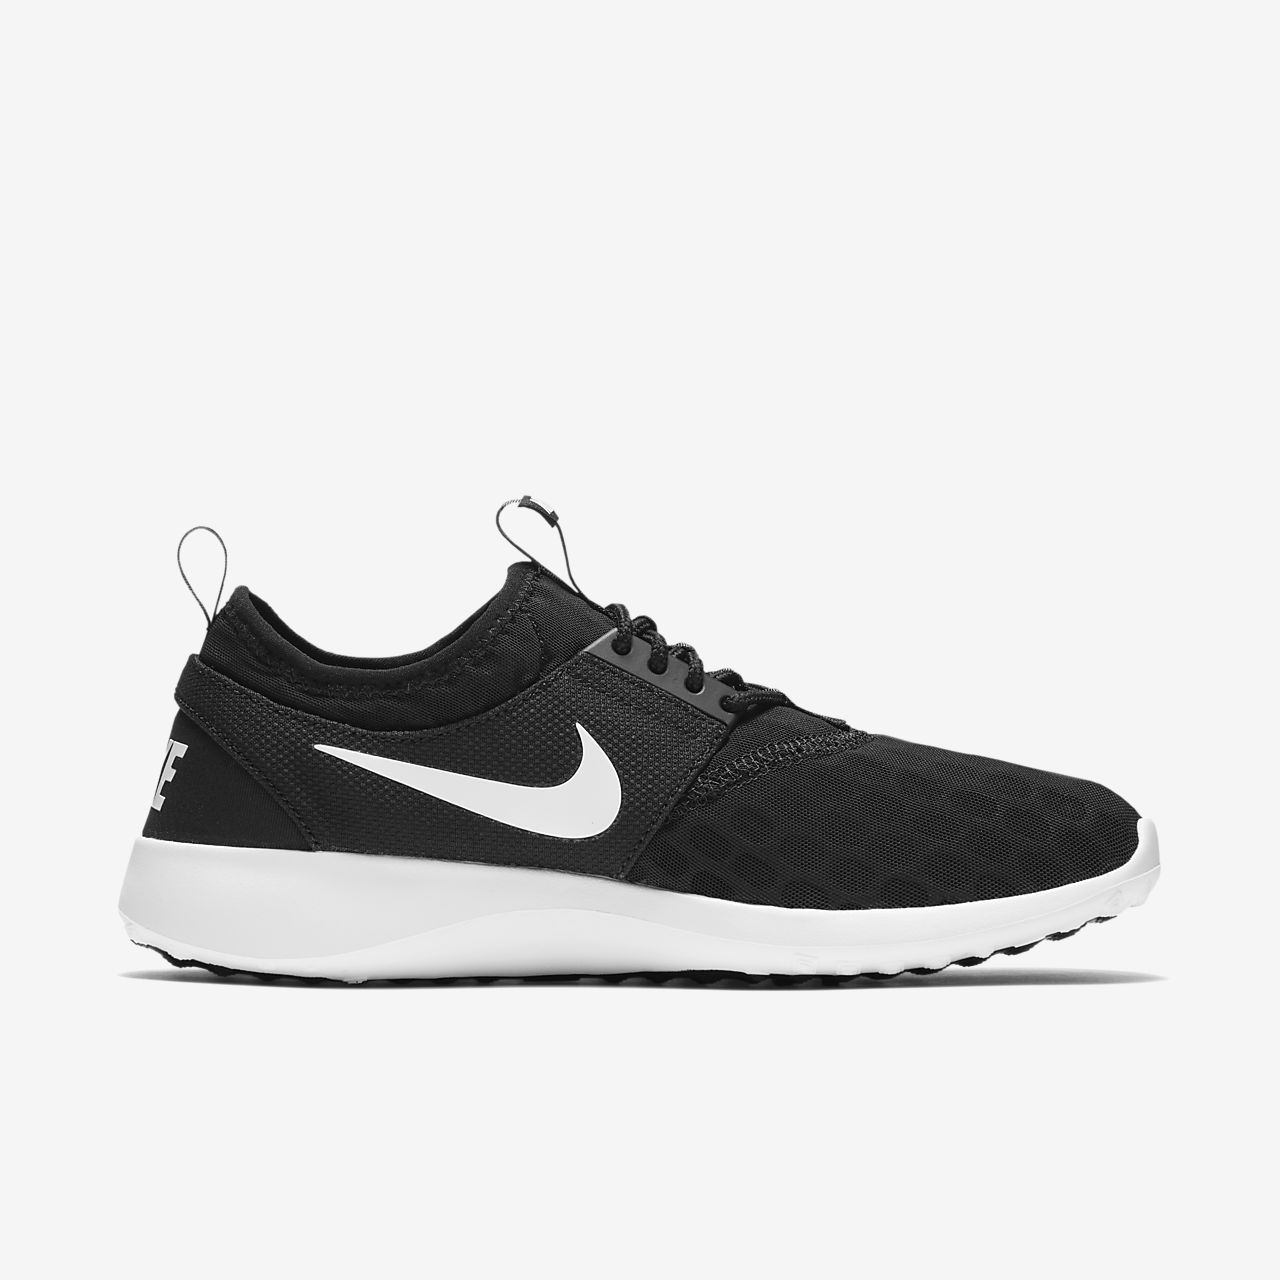 73c5f73341b Low Resolution Nike Juvenate Women s Shoe Nike Juvenate Women s Shoe